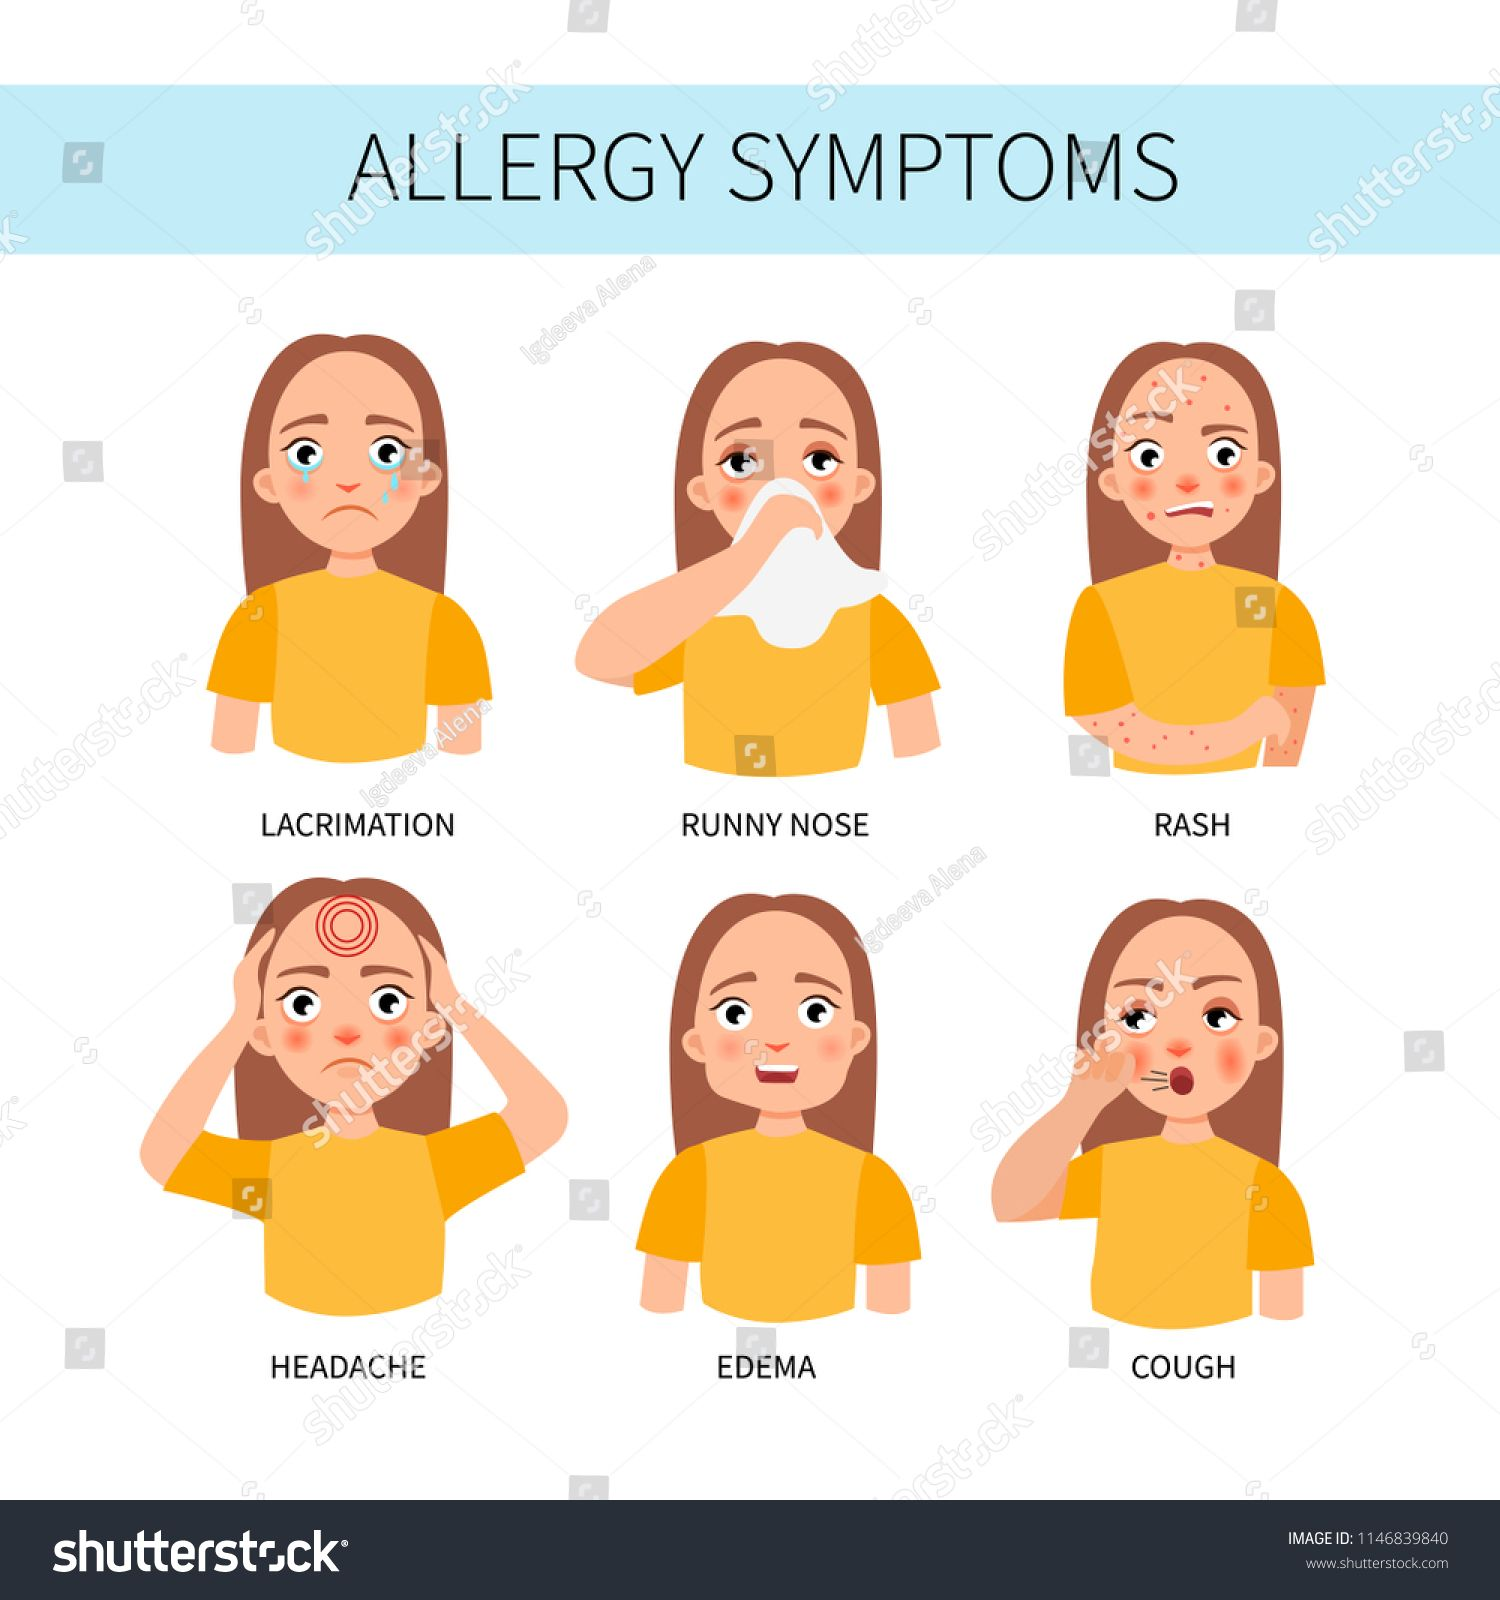 Allergy symptoms lacrimation, sneezing, cough, runny